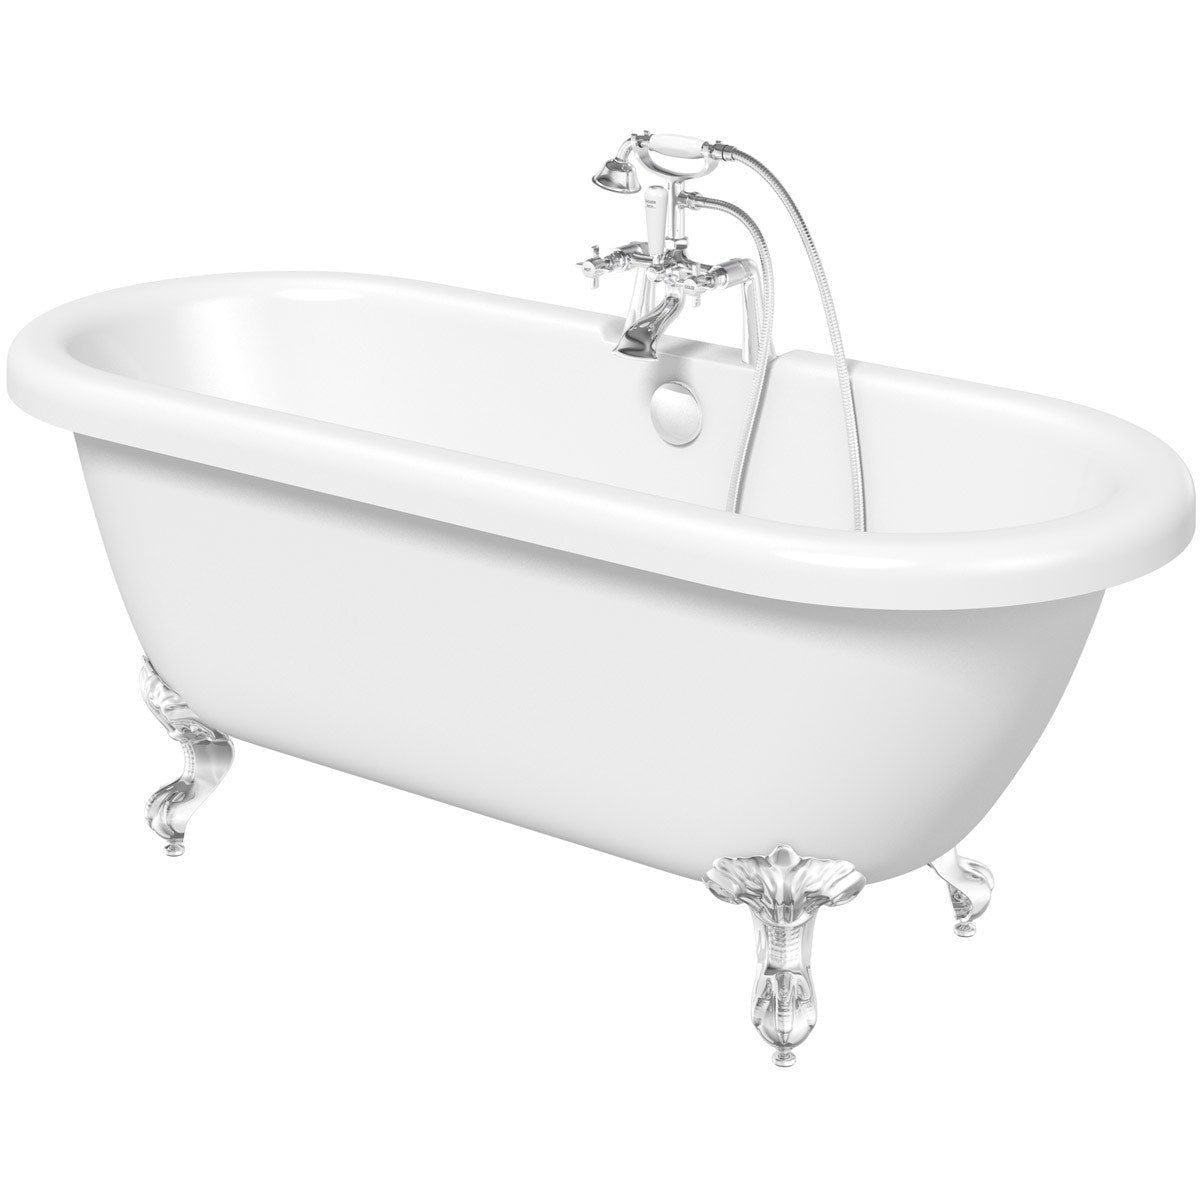 The Bath Co. Dulwich roll top bath with ball and claw feet offer pack